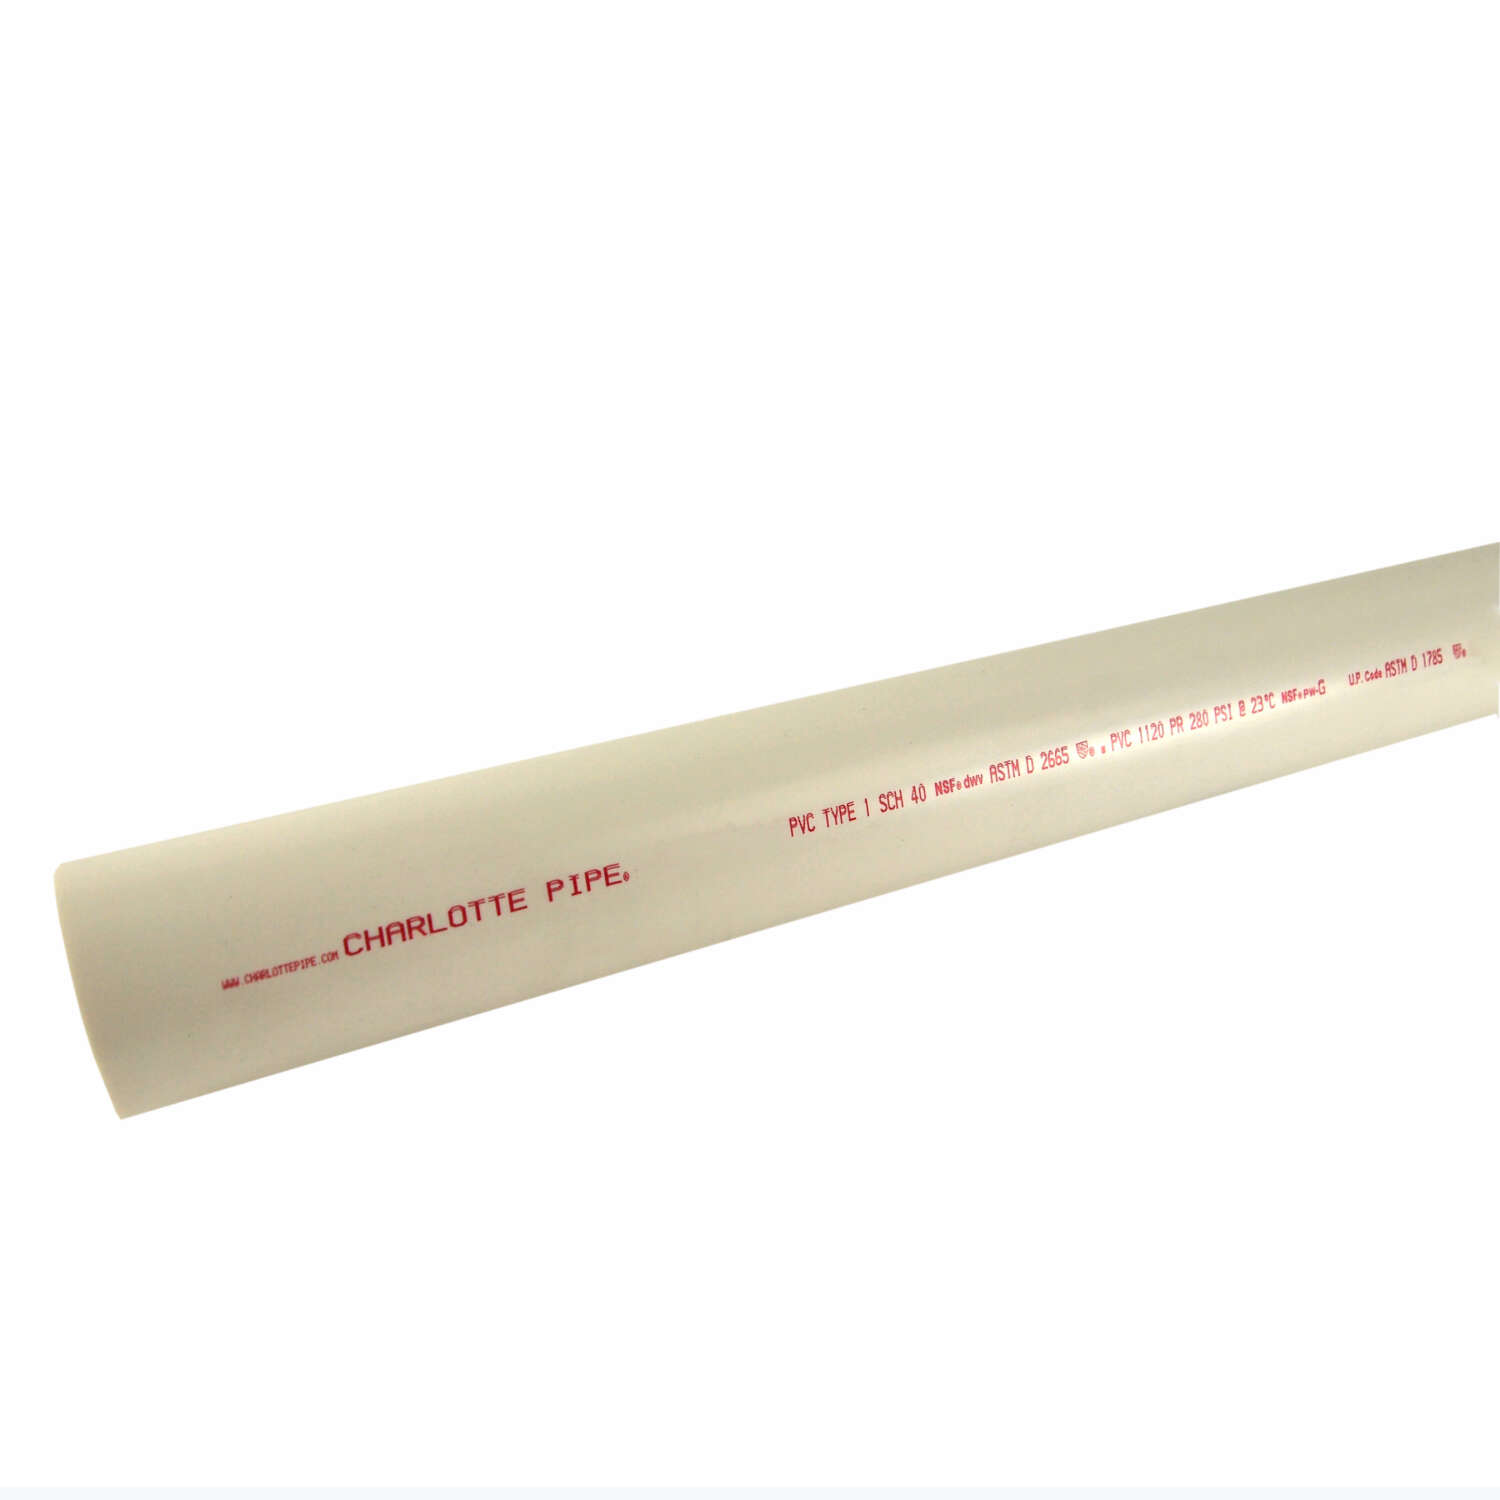 Charlotte Pipe  Schedule 40  PVC  Dual Rated Pipe  1-1/4 in. Dia. x 10 ft. L Plain End  370 psi